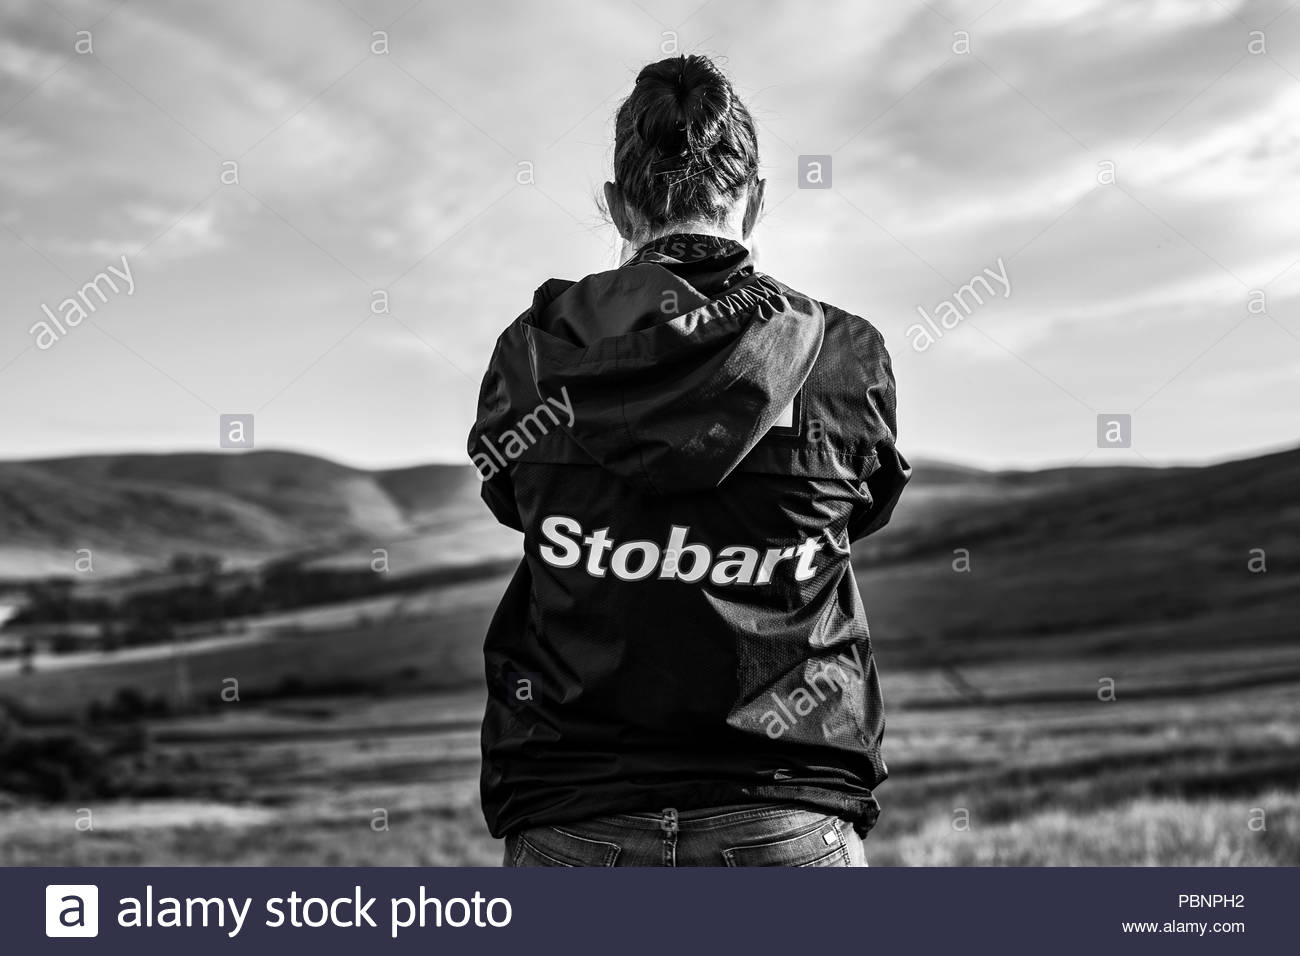 Langholm, Dumfries and Galloway, Scotland, UK. 28th July 2018. Langholm Common Riding climaxes each year on the last Friday of July after a series rid Stock Photo